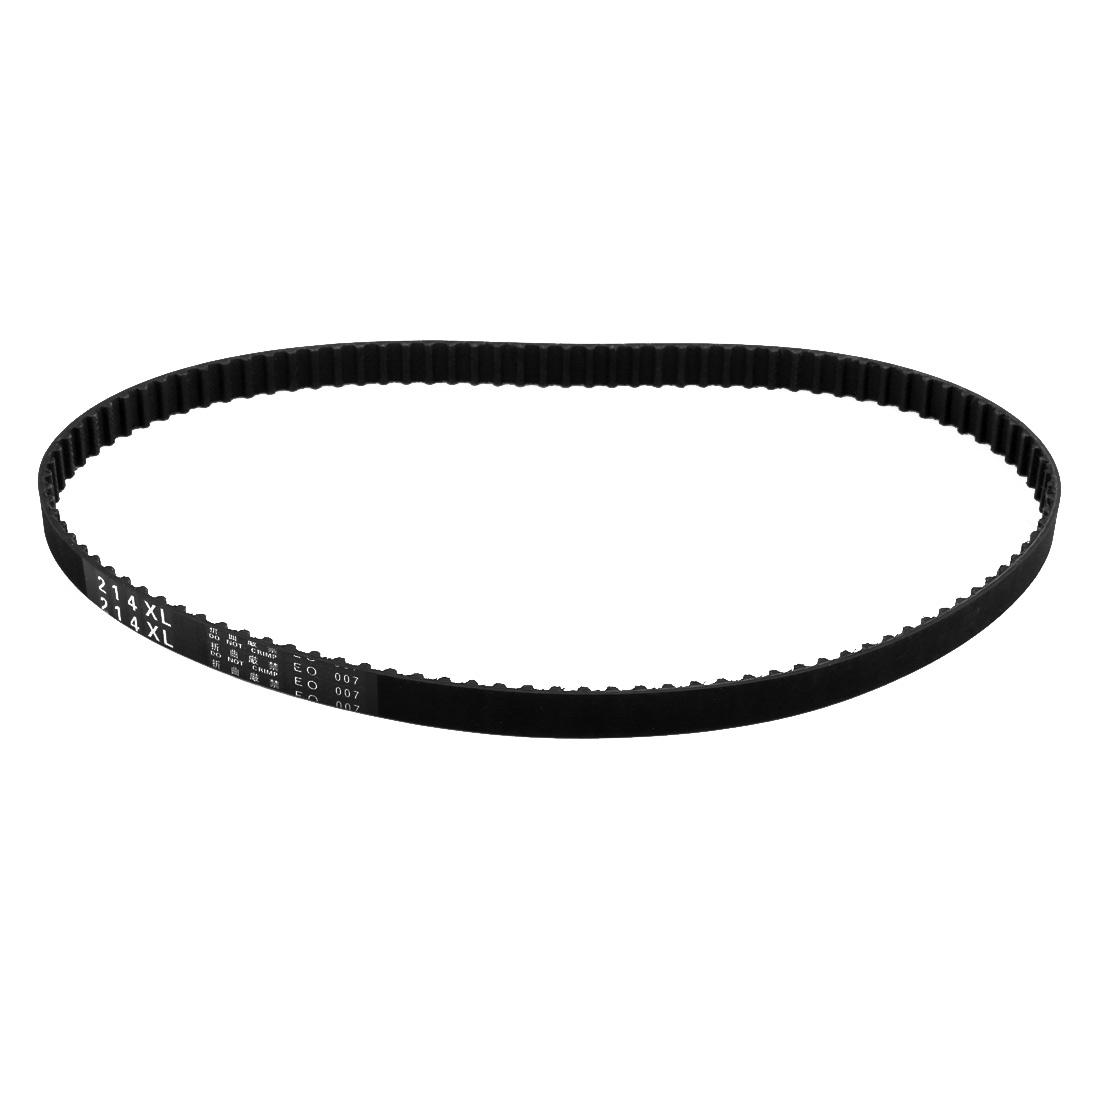 214XL 107 Teeth 10mm Width 5.08mm Pitch Stepper Motor Rubber Timing Geared Belt